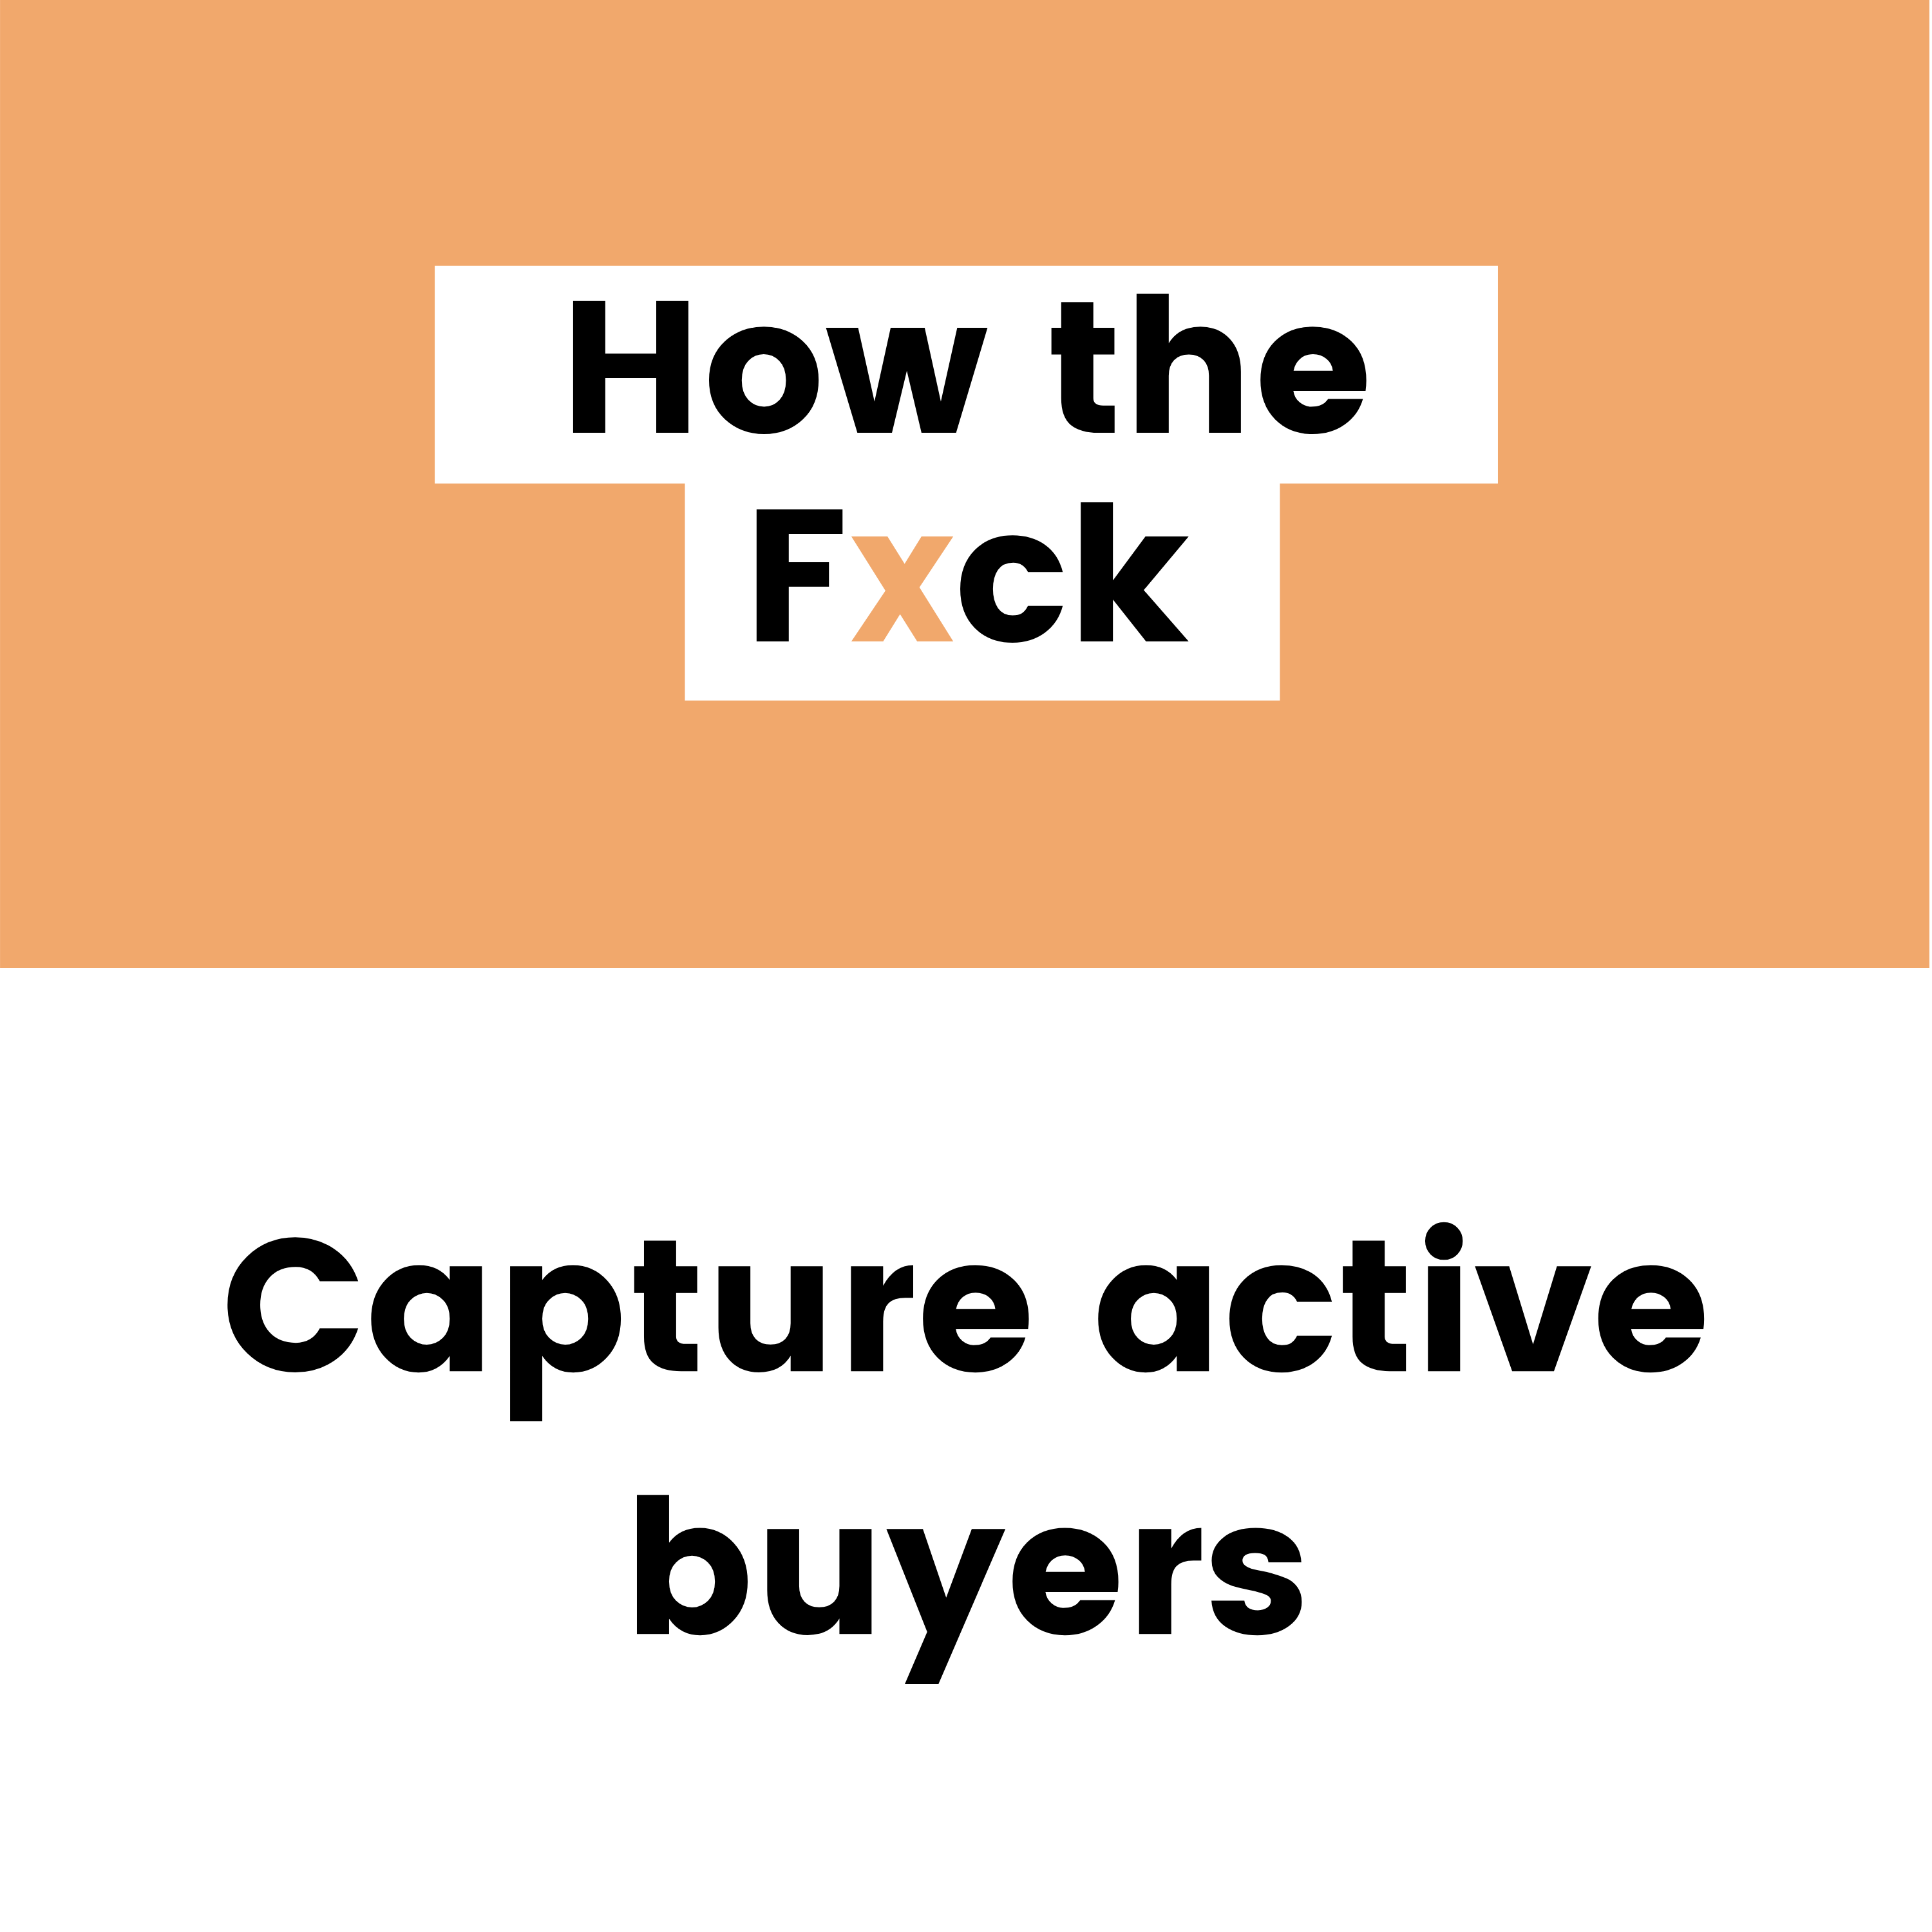 One simple strategy designed to capture active buyers